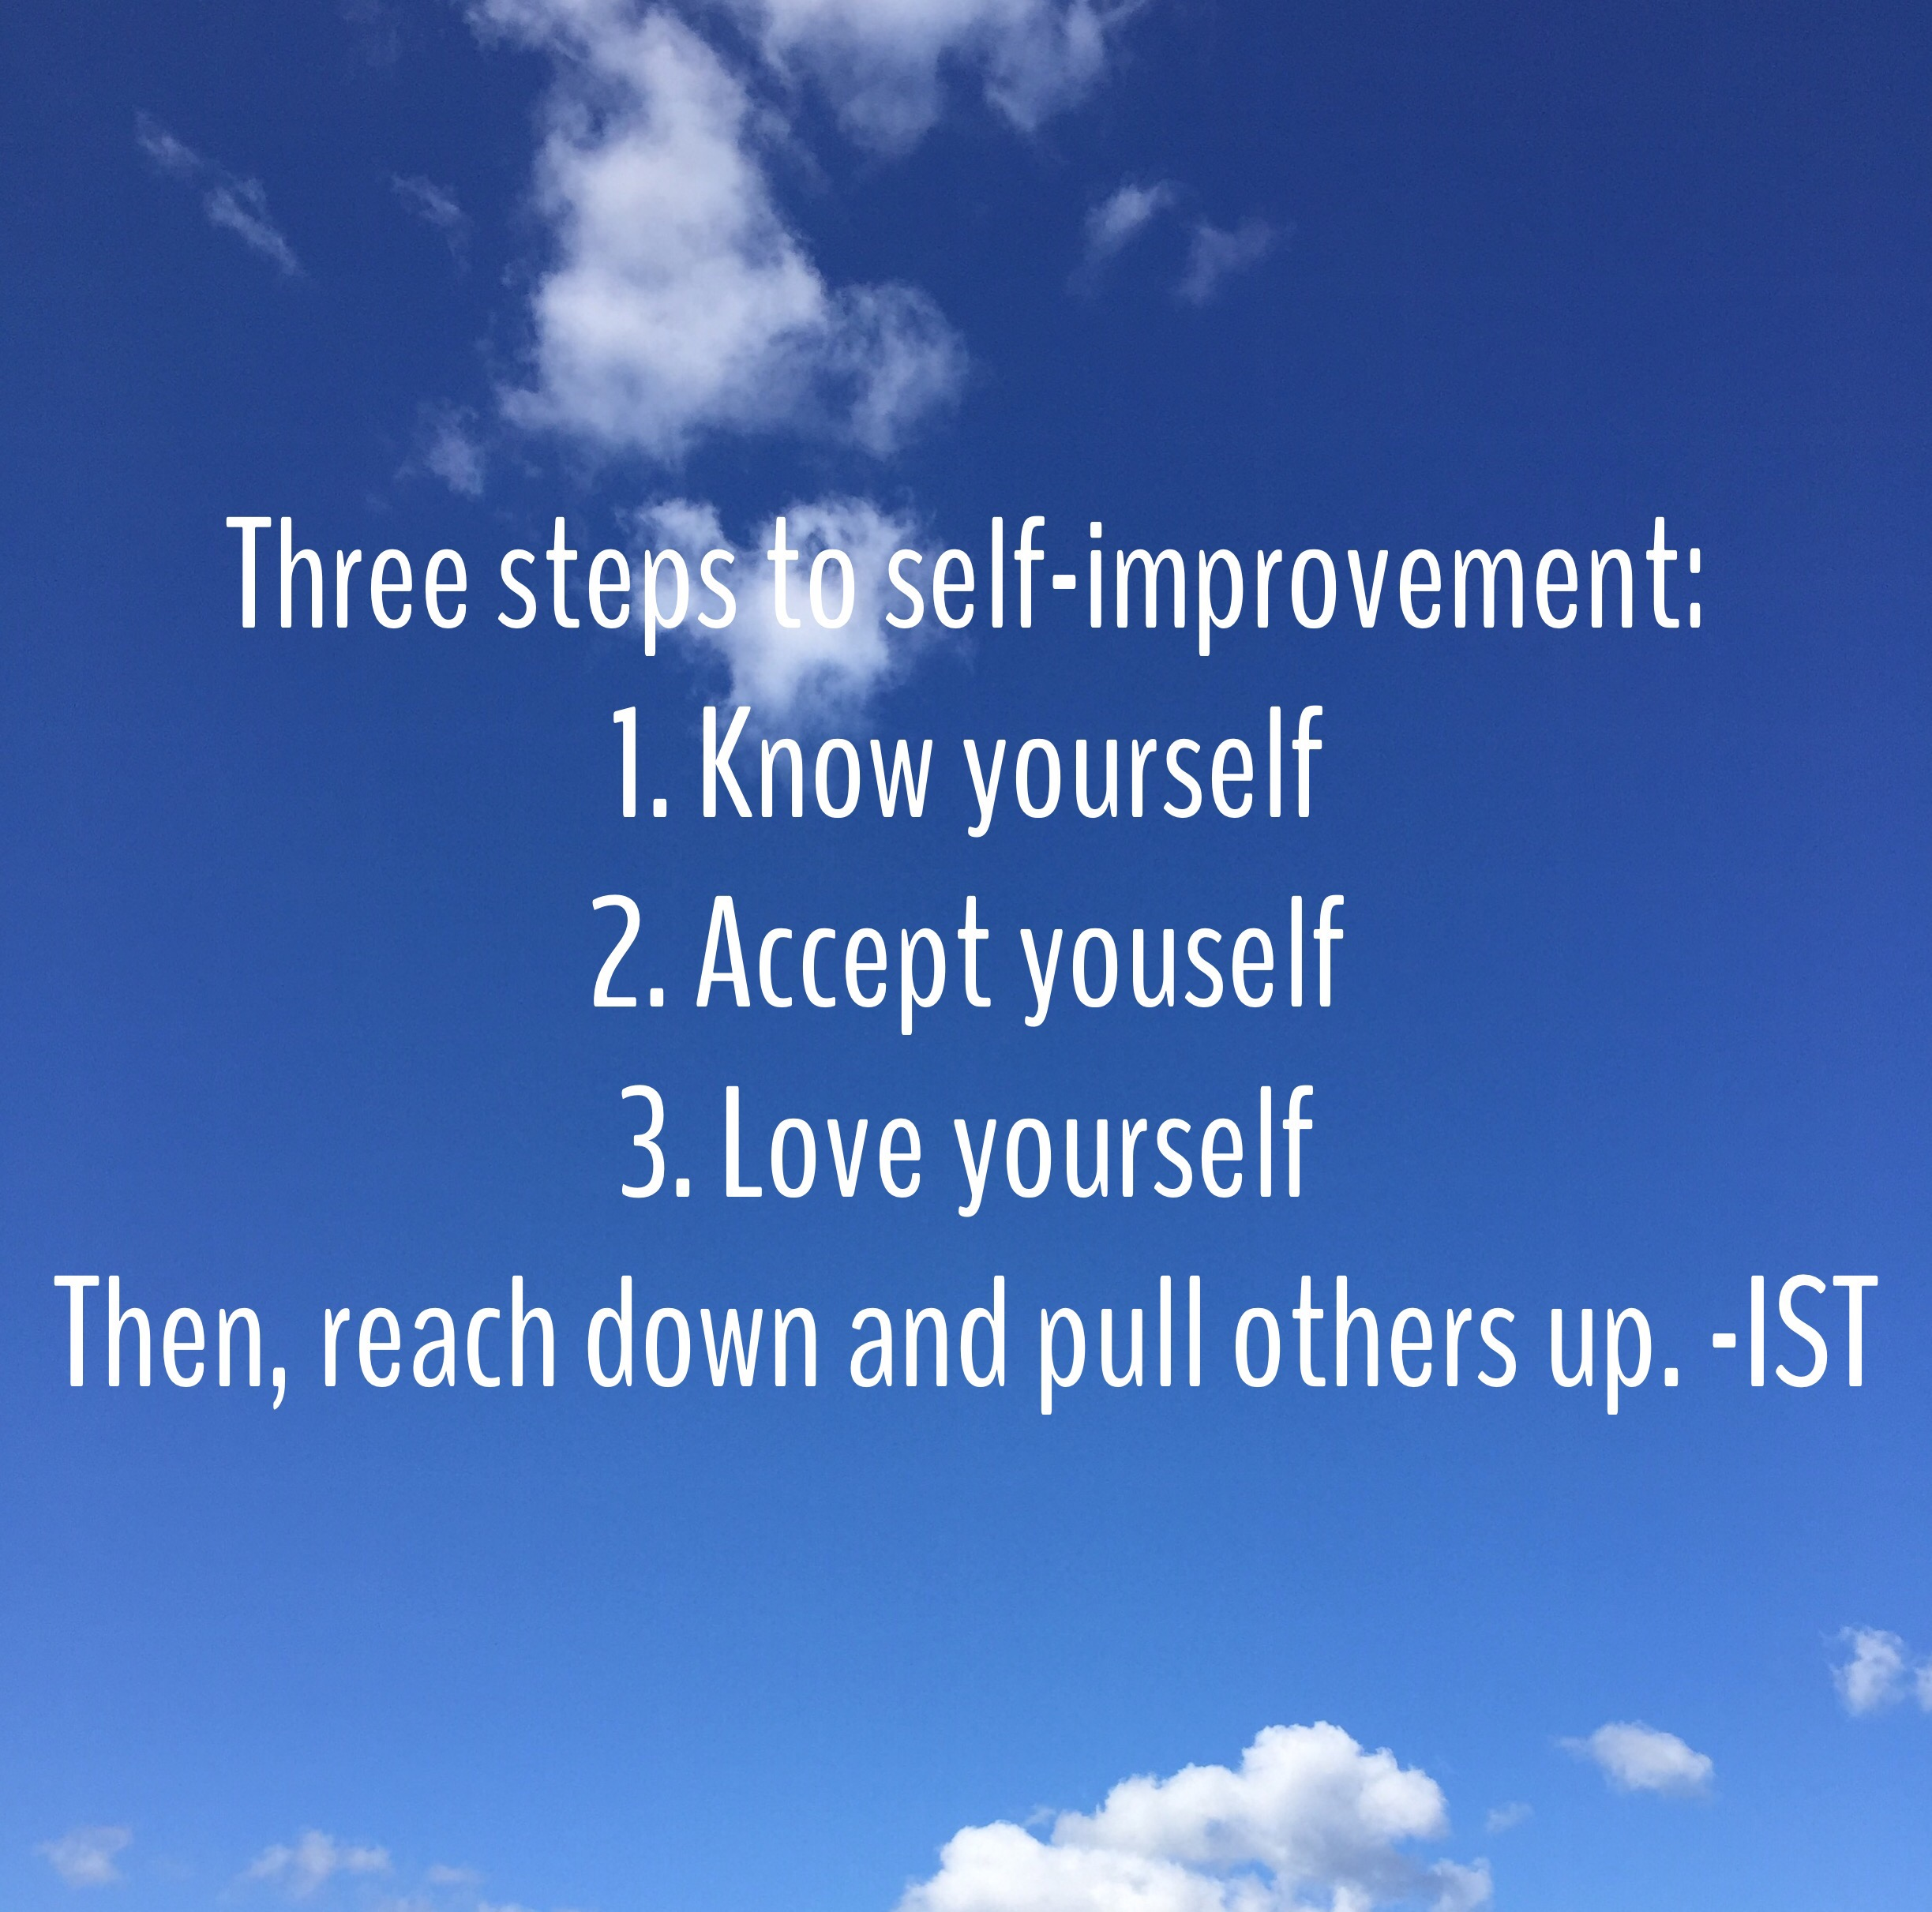 Three steps to self improvement graphic